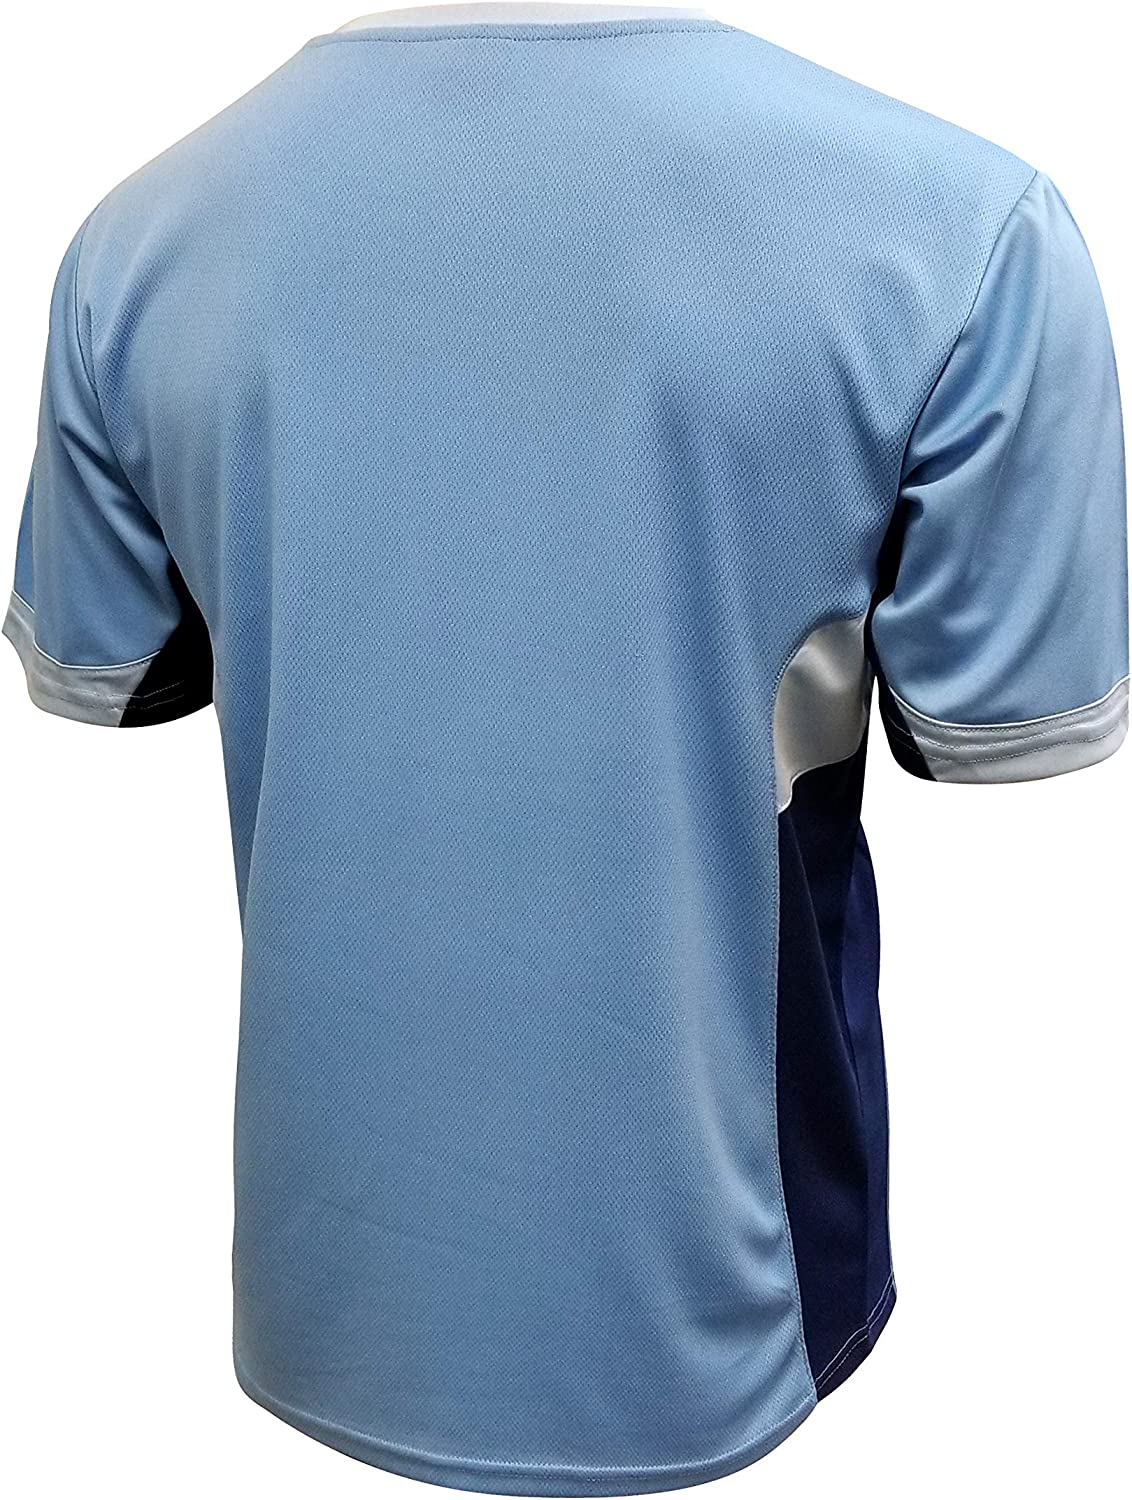 Manchester City Jersey Soccer Men Training Athletic fit Custom Name and Number Licensed